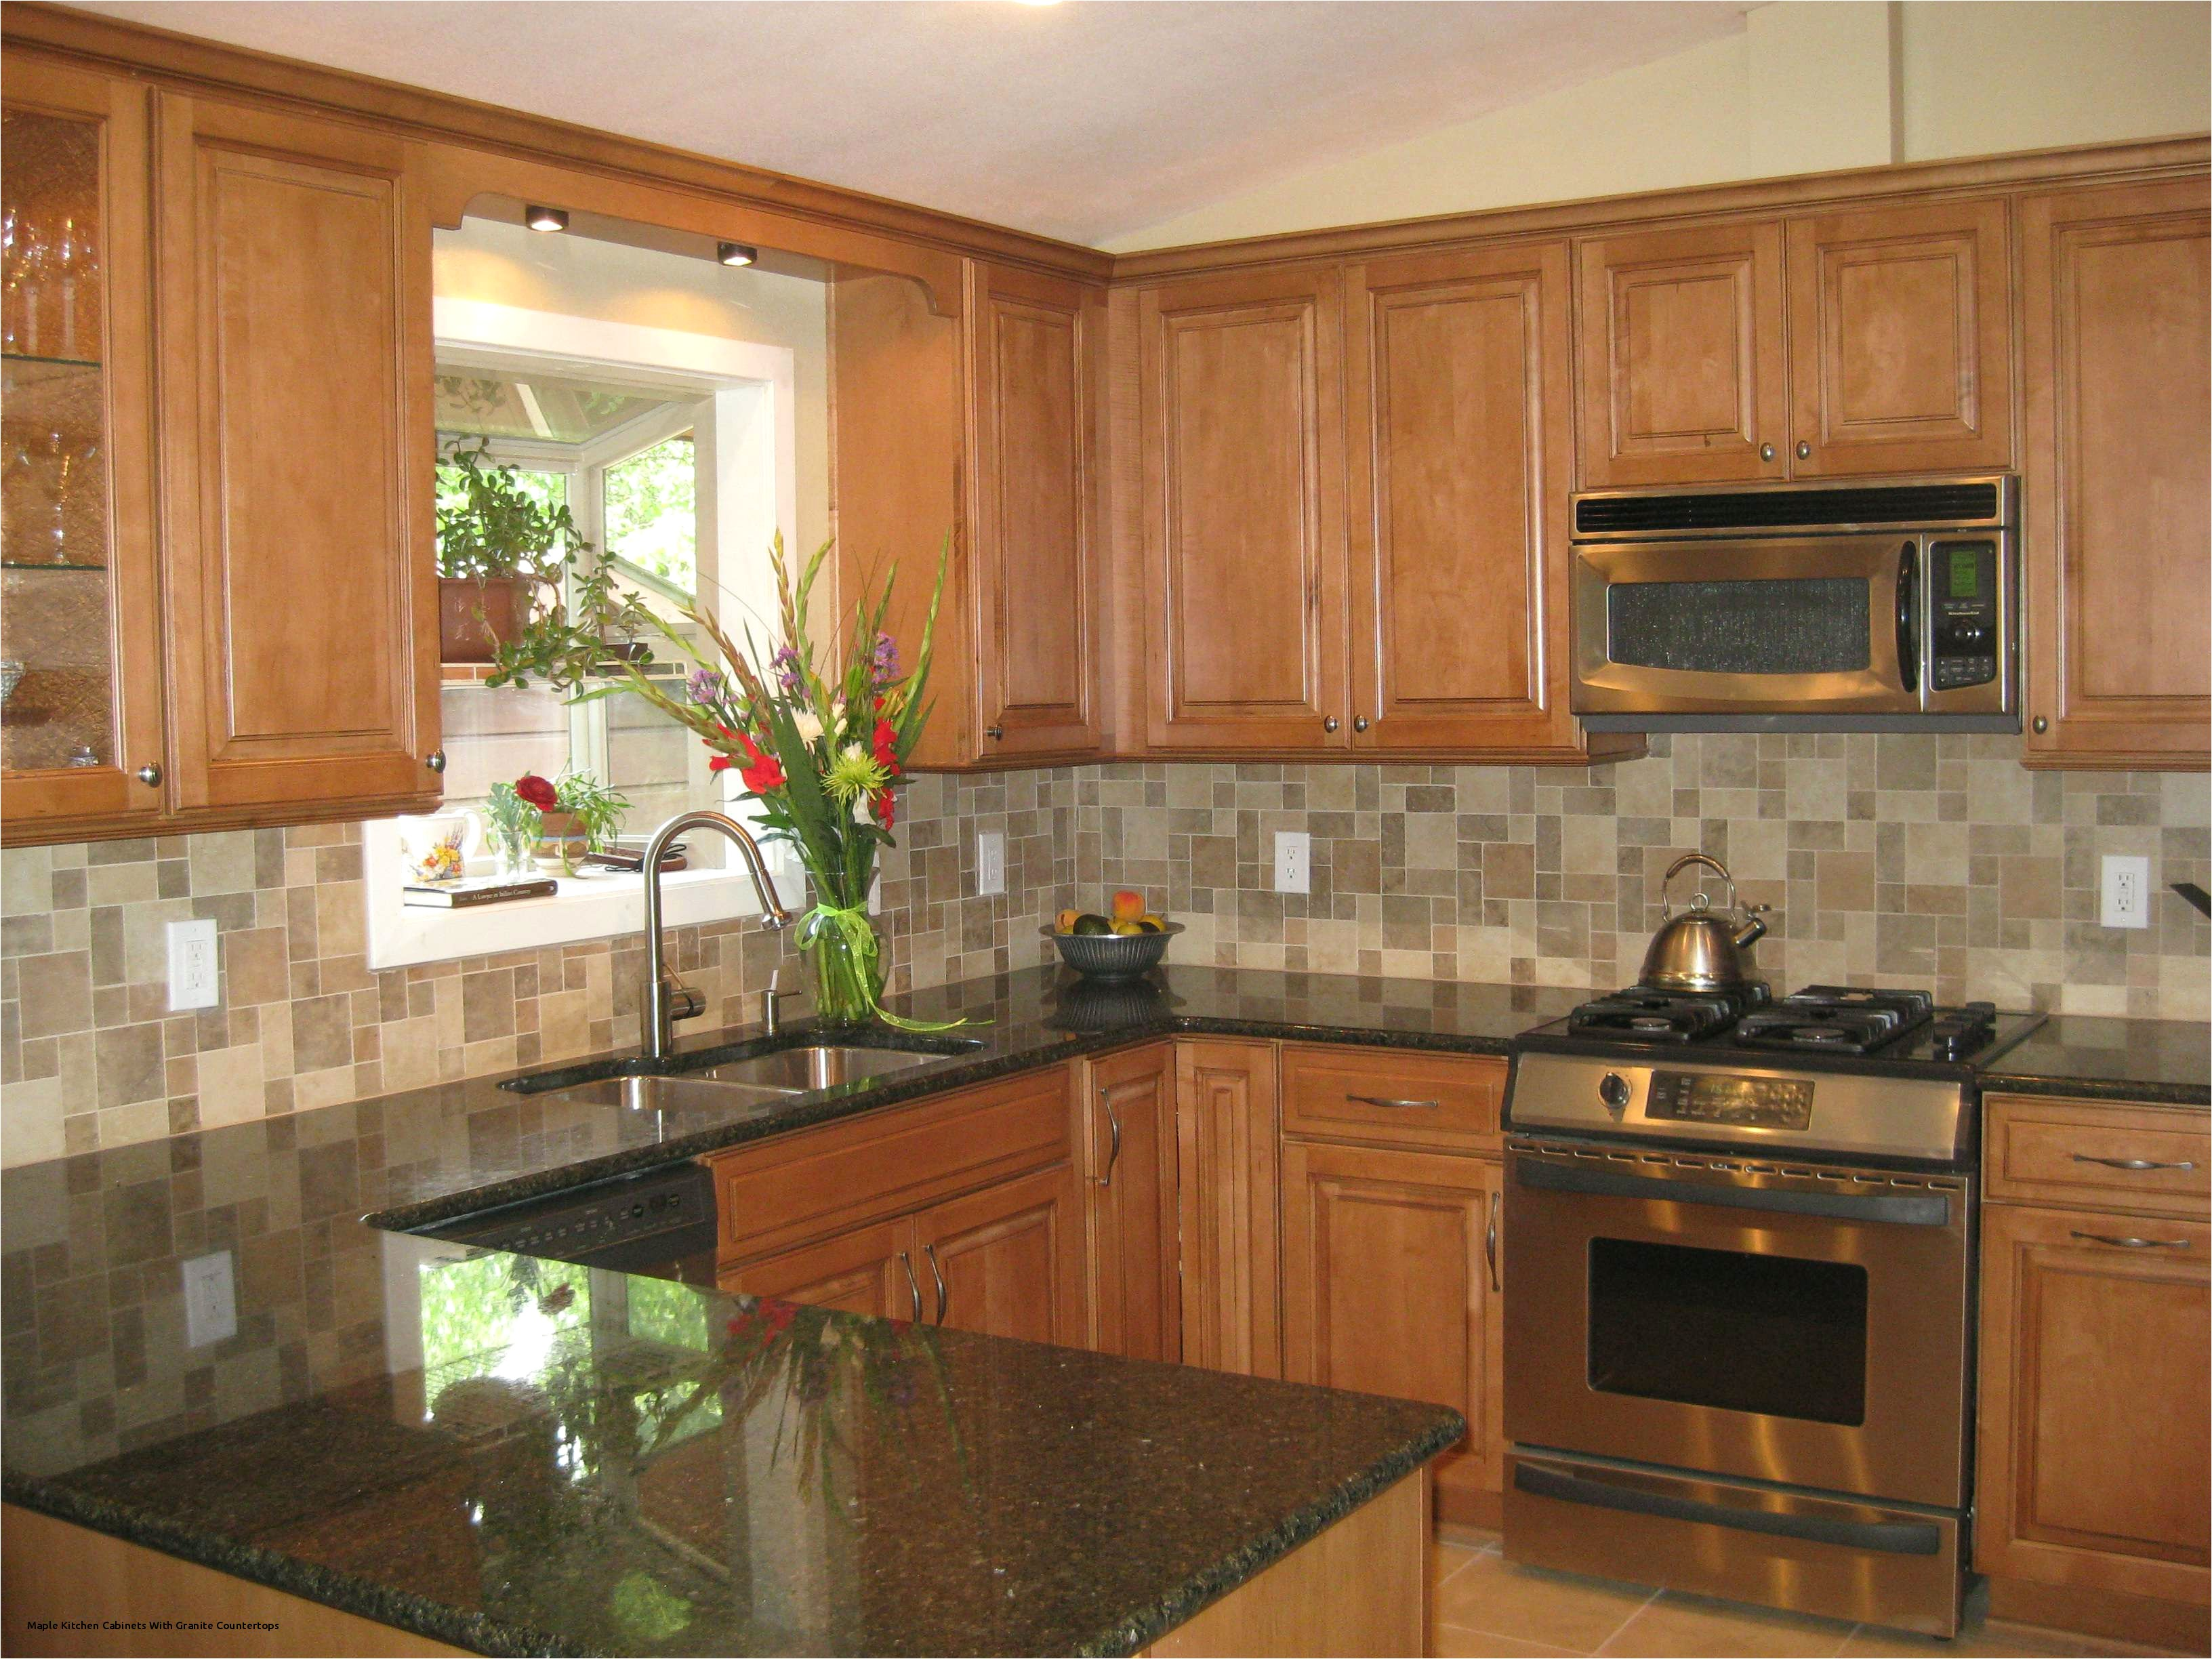 Backsplash Ideas for Black Granite Countertops and Maple Cabinets Maple Kitchen Cabinets with Granite Countertops Best 17 Best